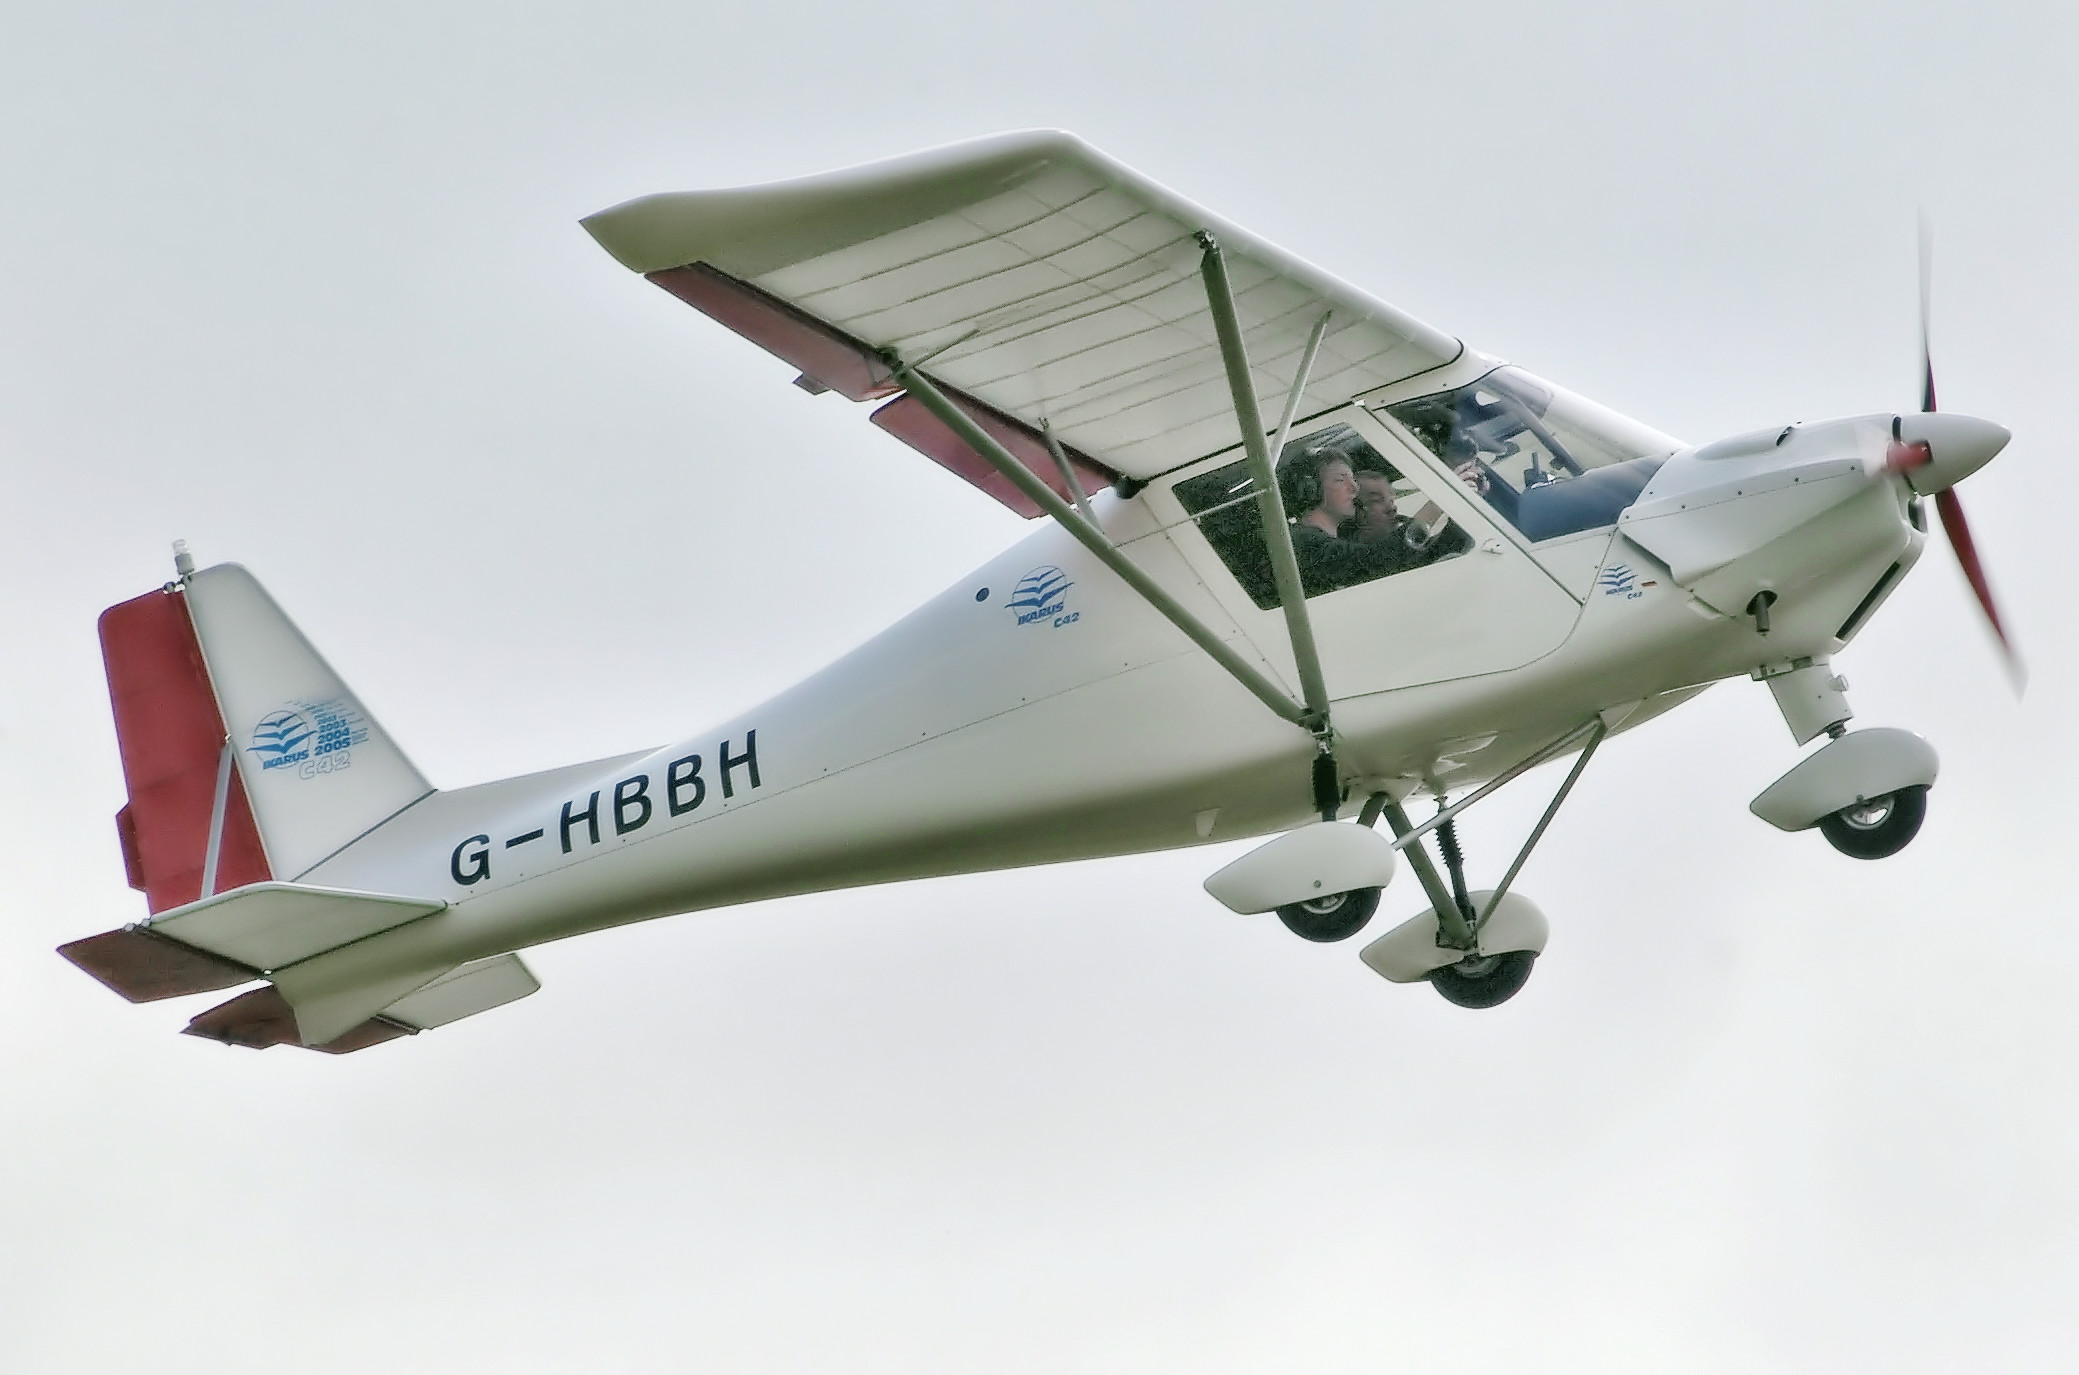 Dateiikarus C42 G Hbbh Inflight Arpjpg Wikipedia